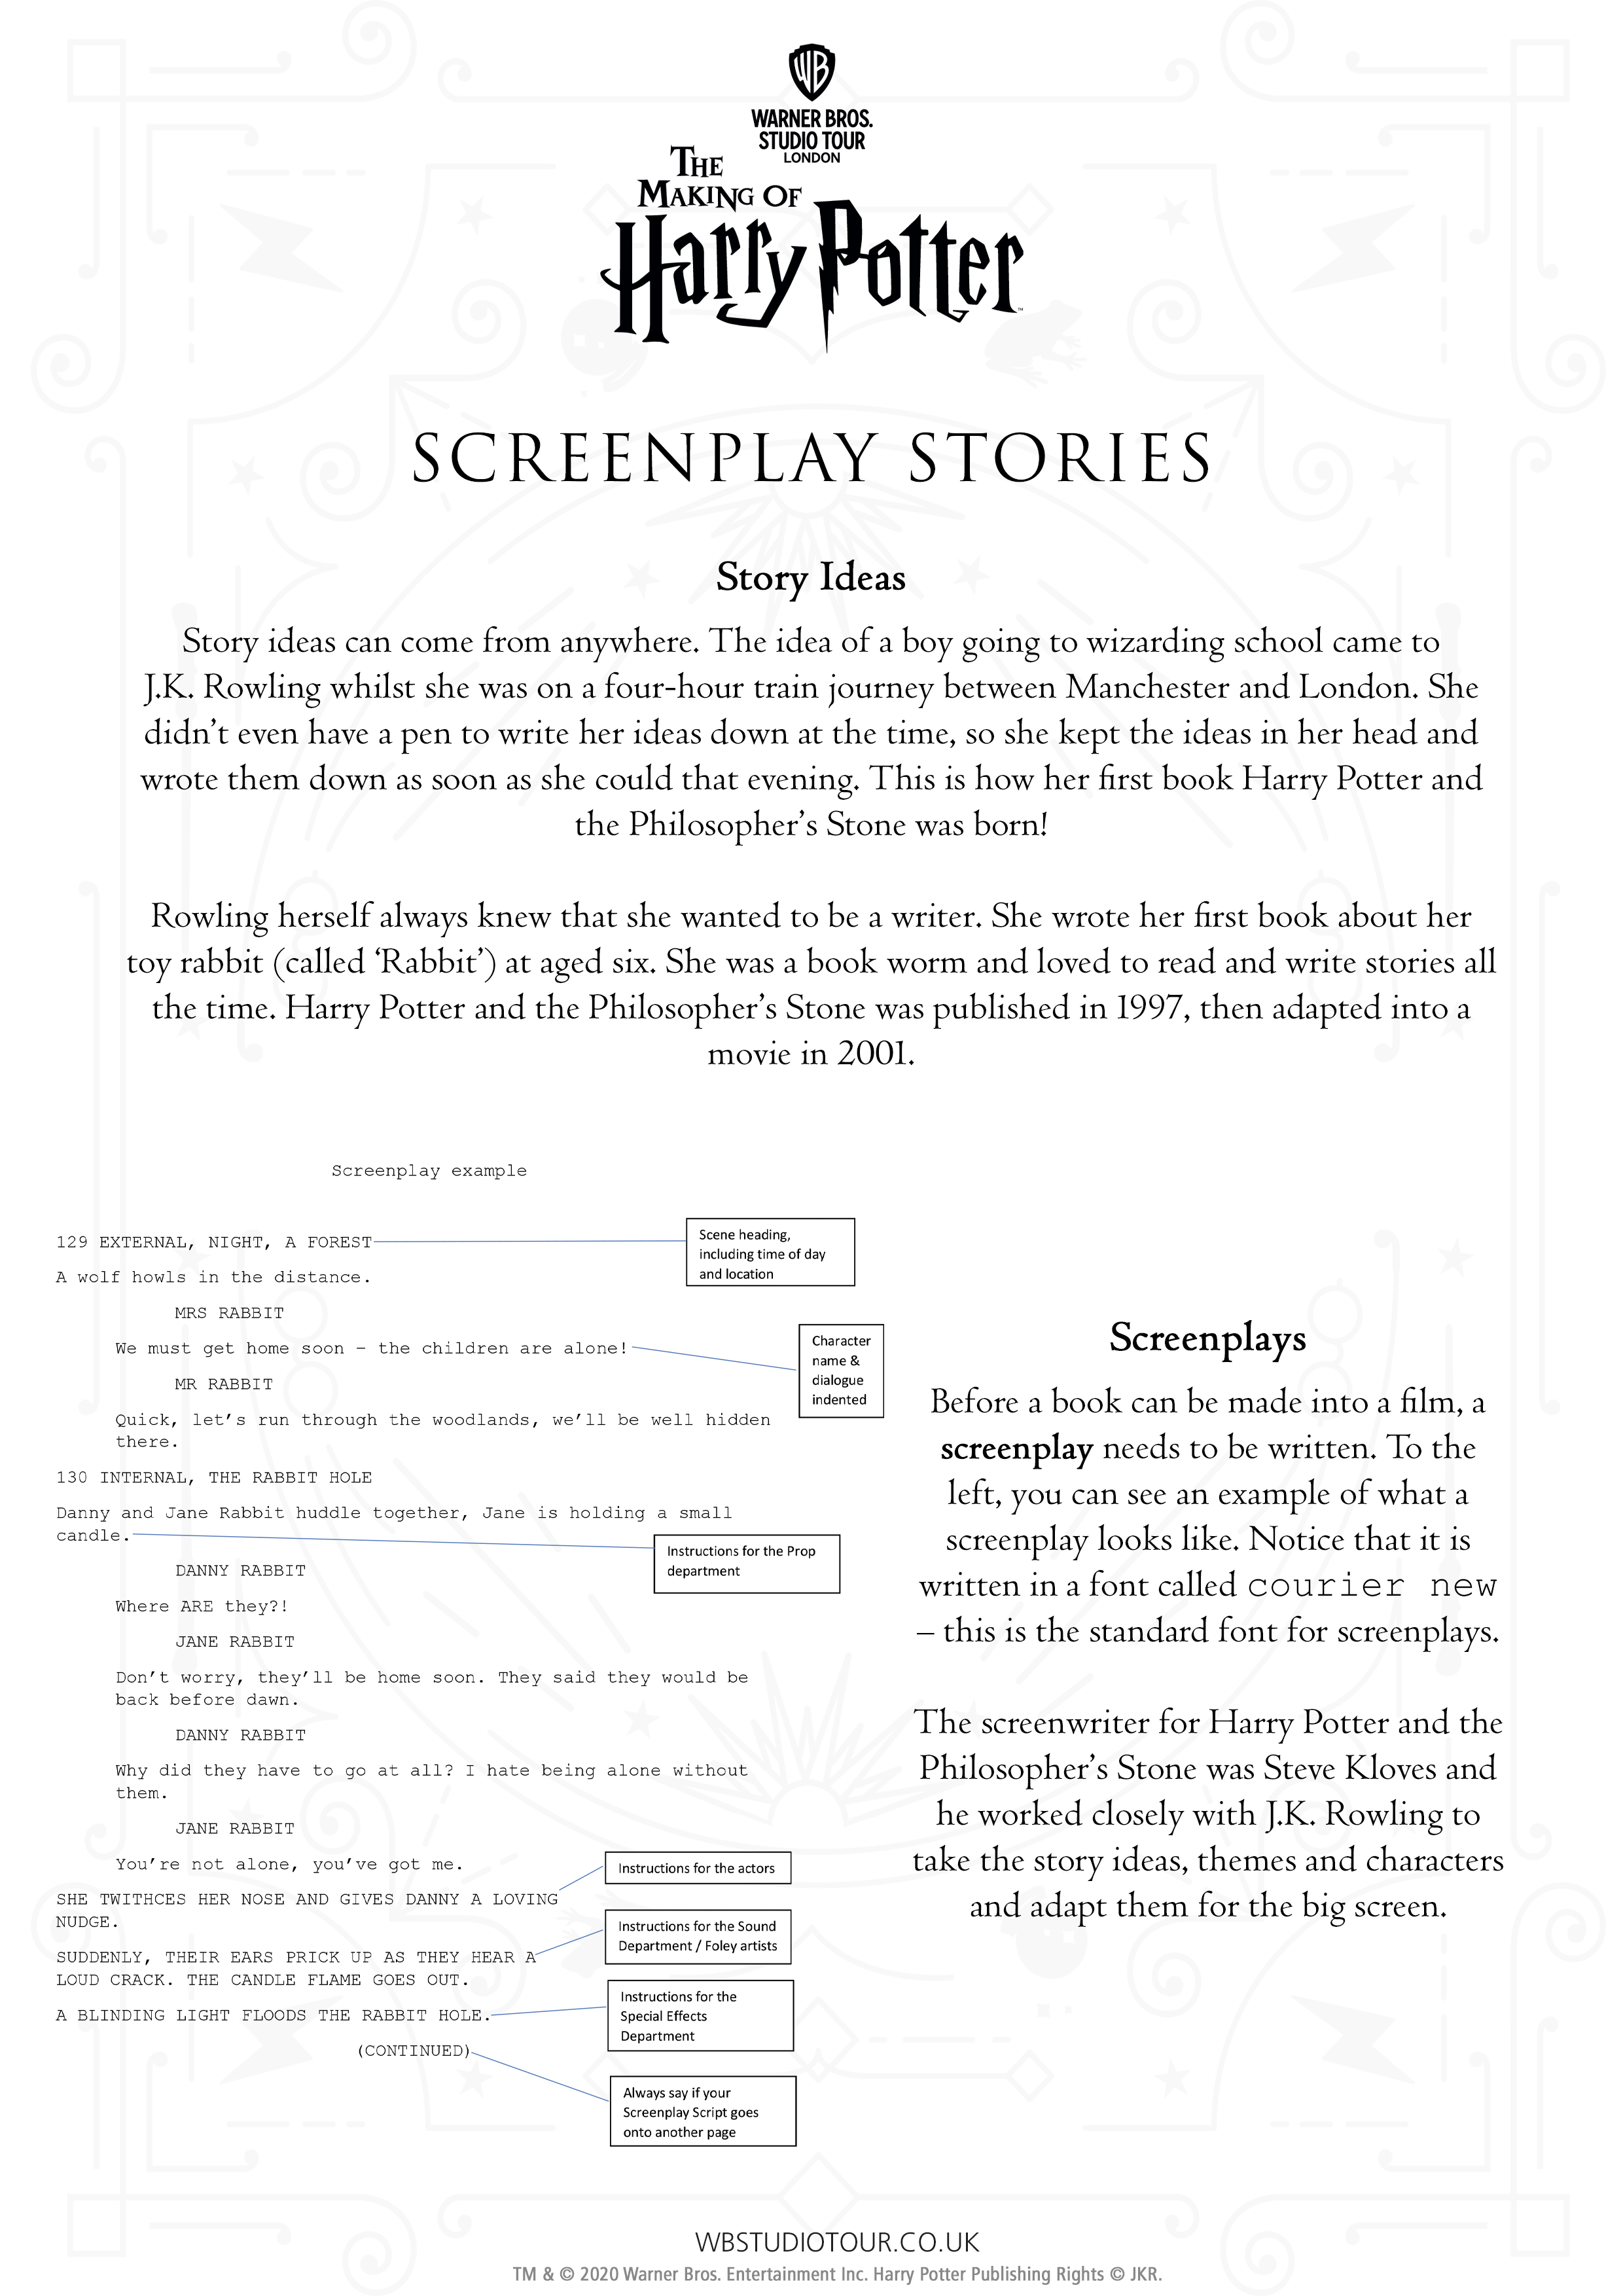 Screenplay activity worksheets page 1 - Studio Tour at Home